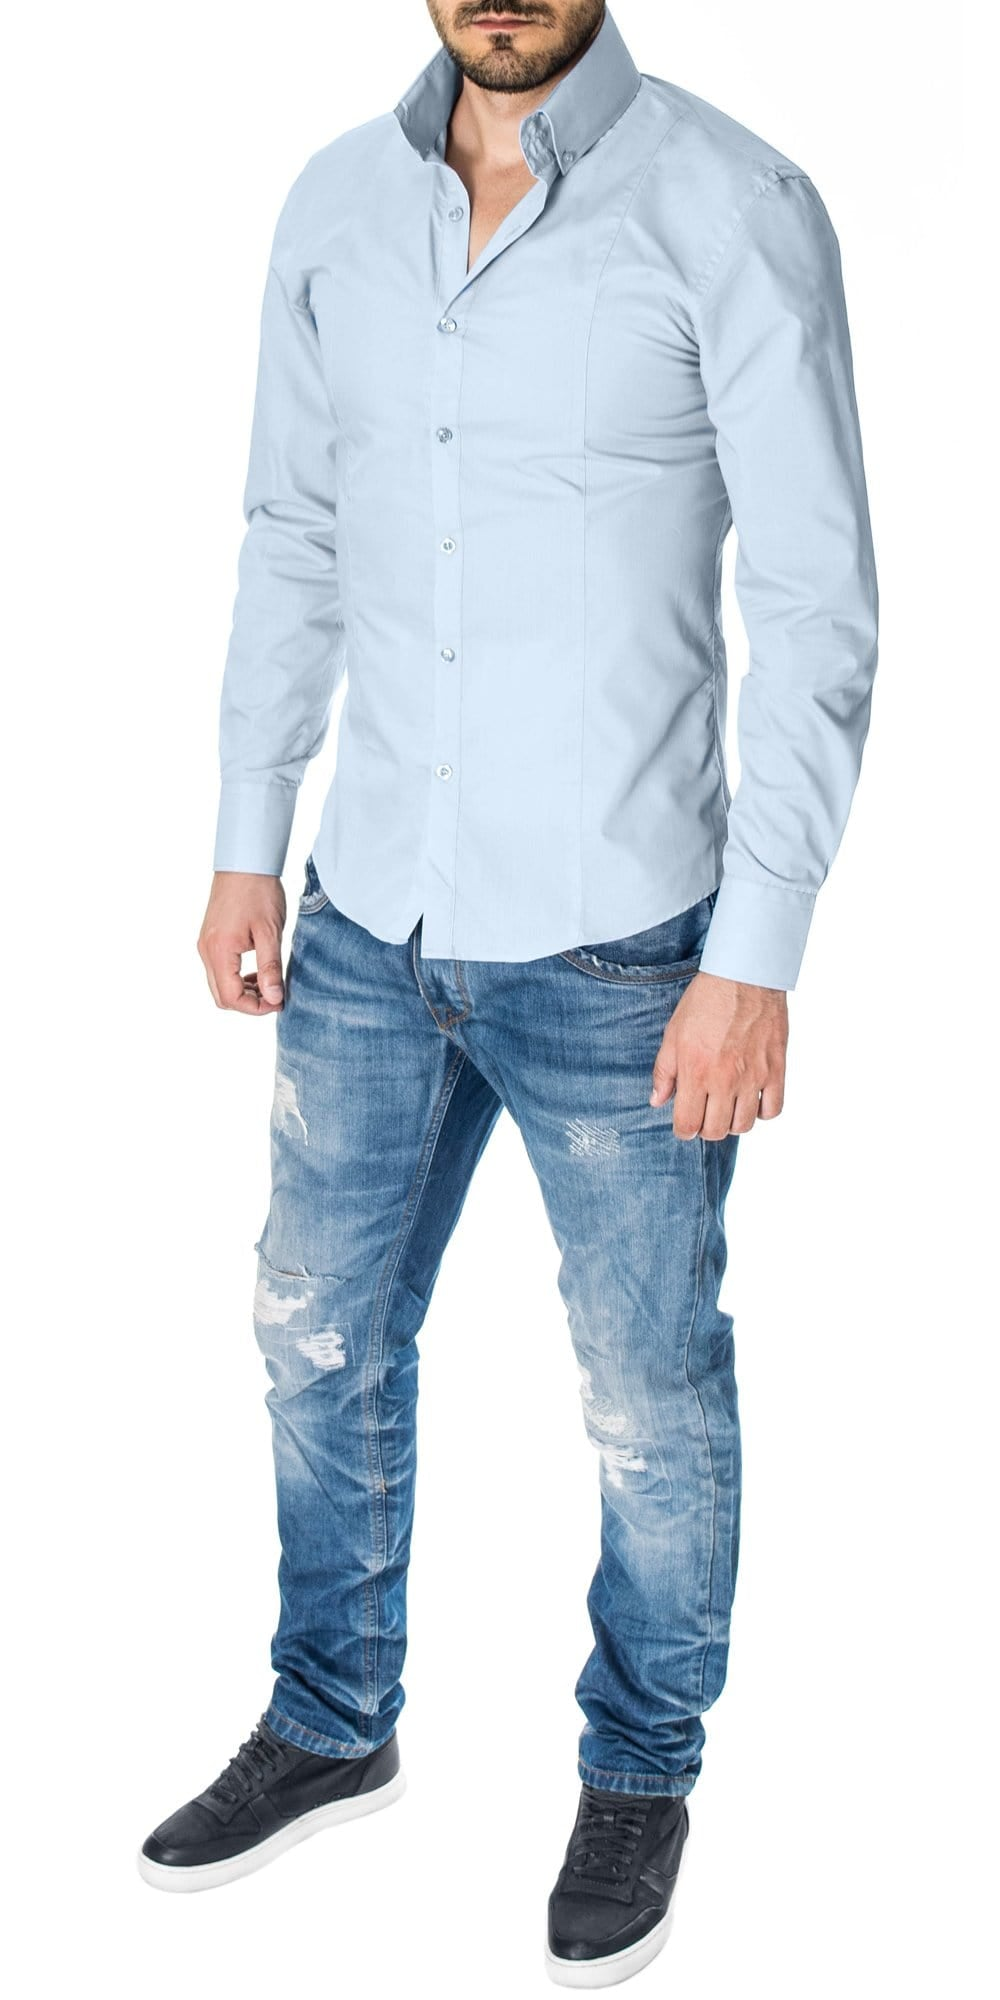 Mens Light Blue Dress Shirt Slim Fit With Oversized High Collar By